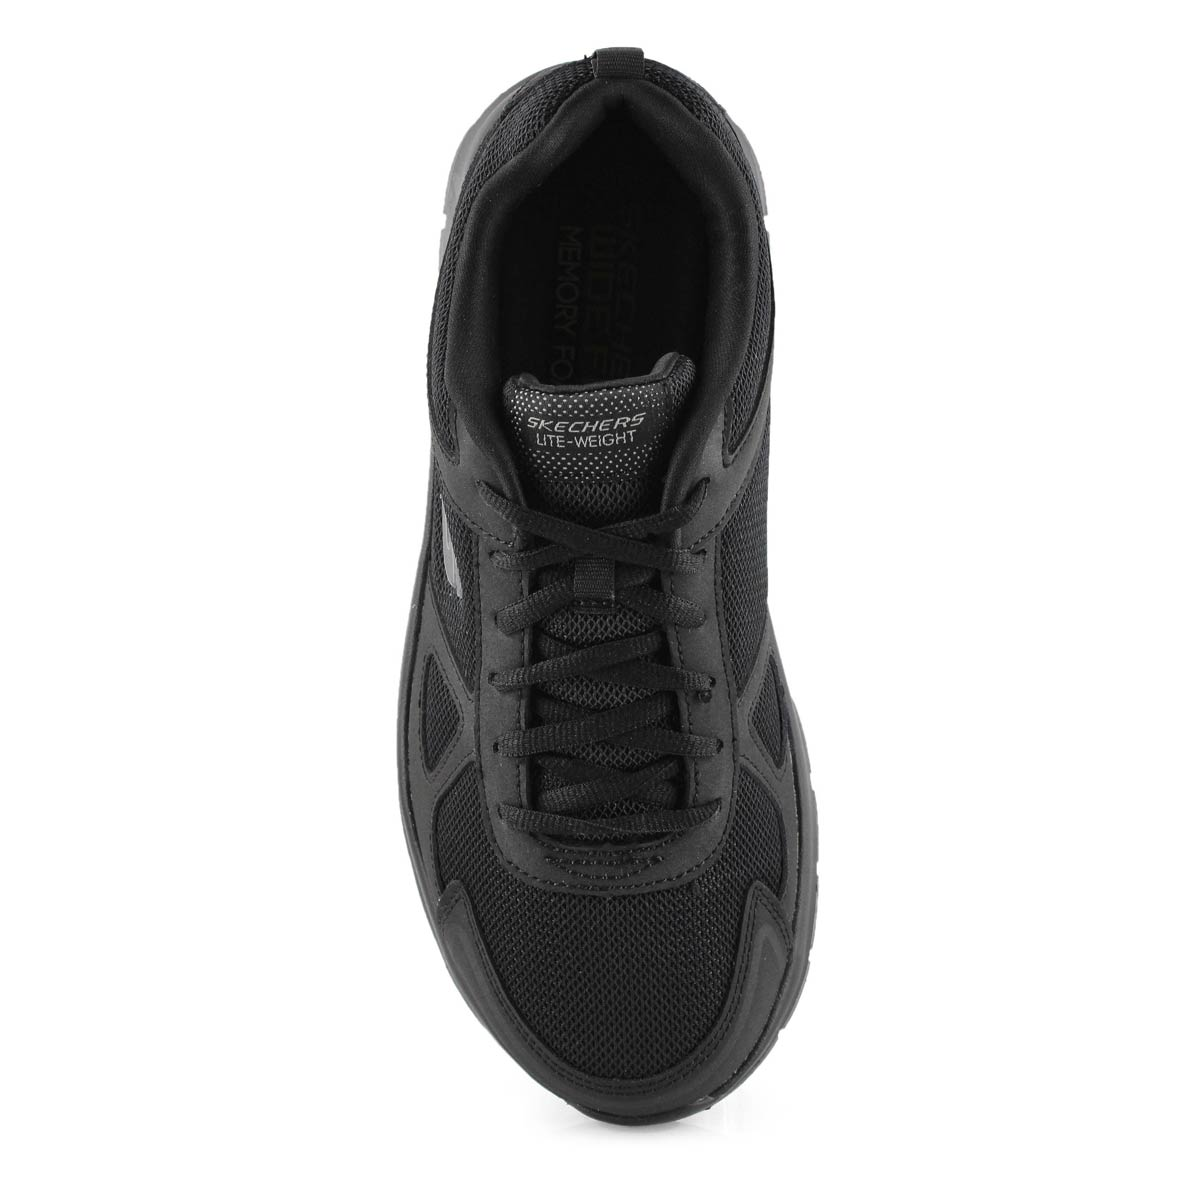 Mns Track Scloric black sneaker- wide